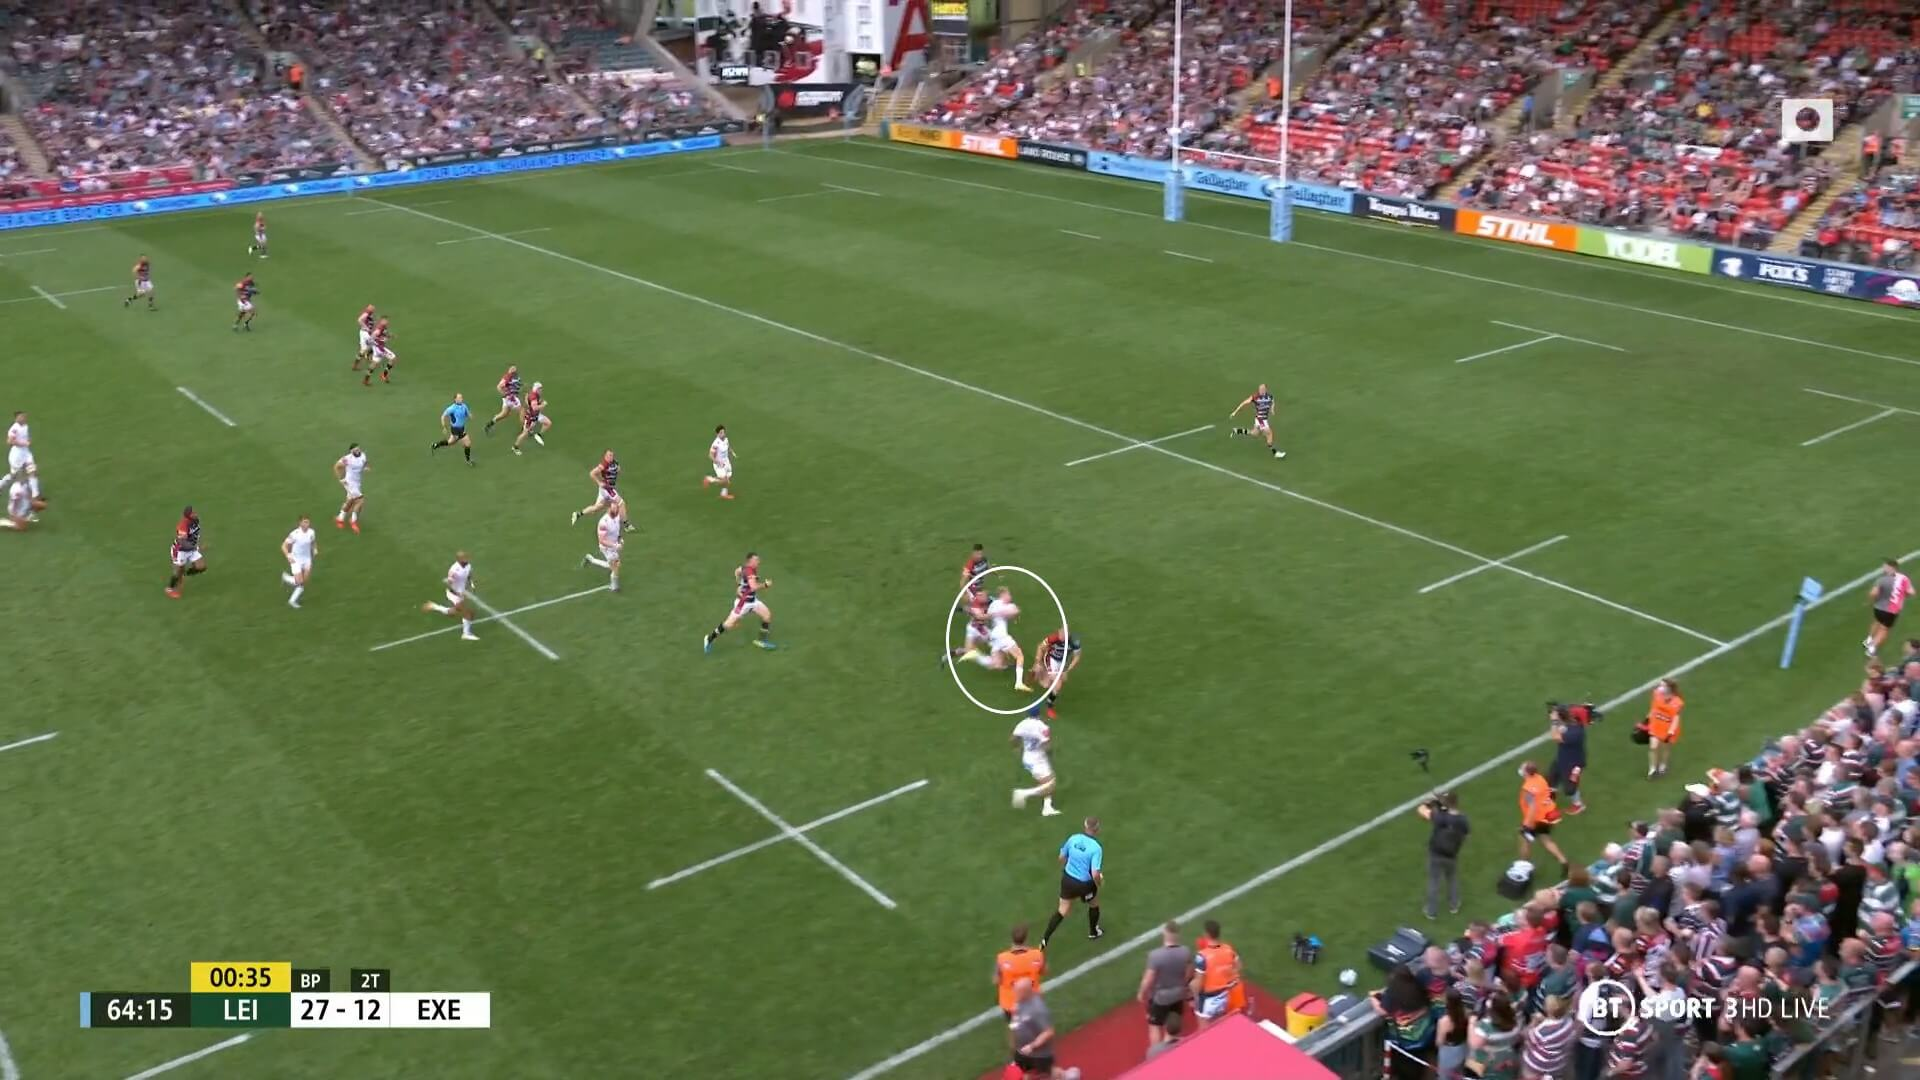 English Premiership 2021/2022: Leicester Tigers v Exeter Chiefs - tactical analysis tactics